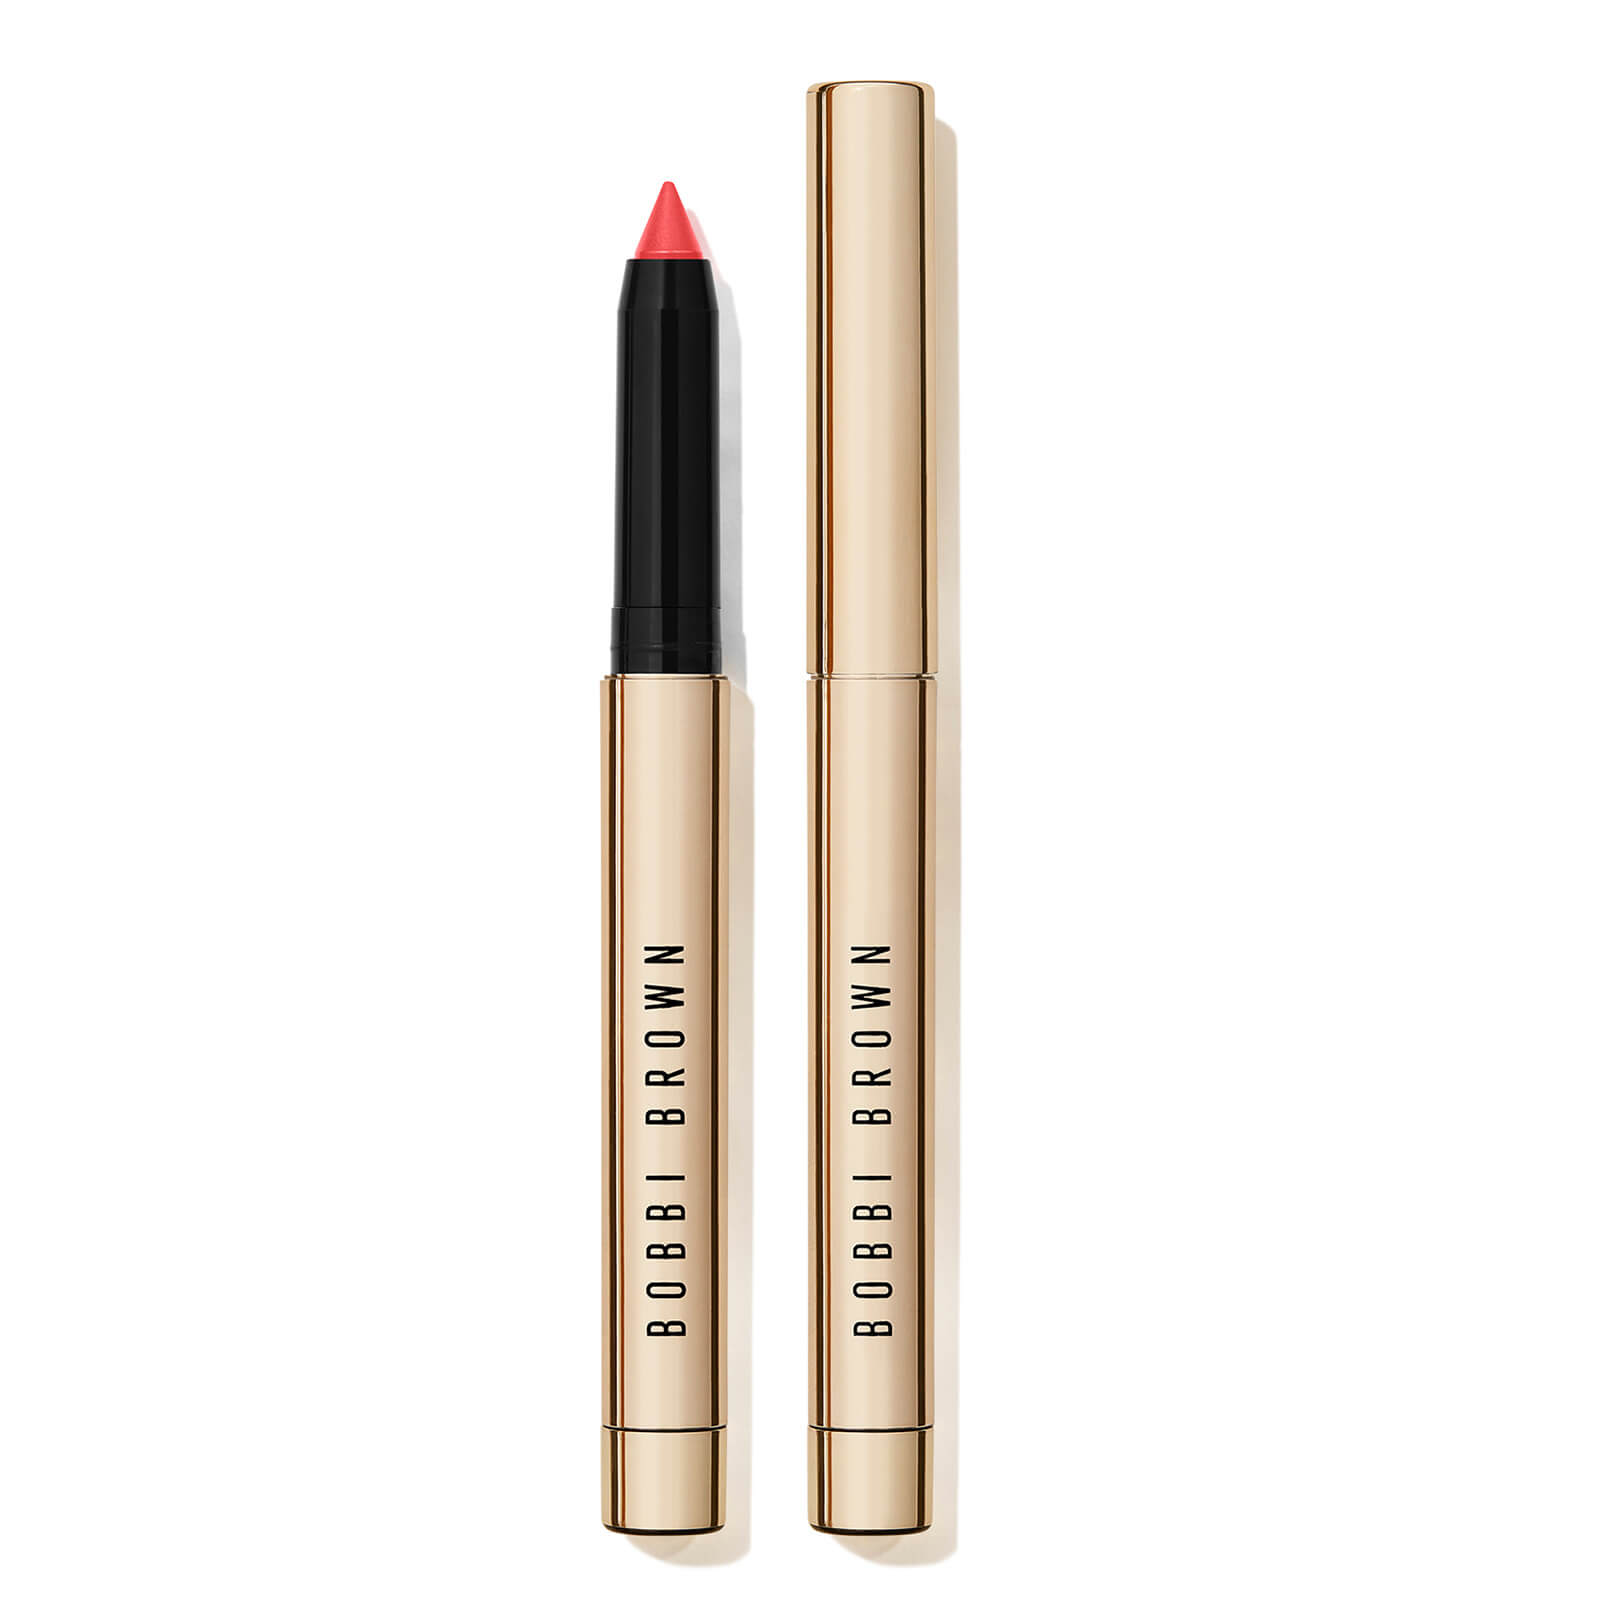 Bobbi Brown Luxe Defining Lipstick 6g - Various Shades - New Mod